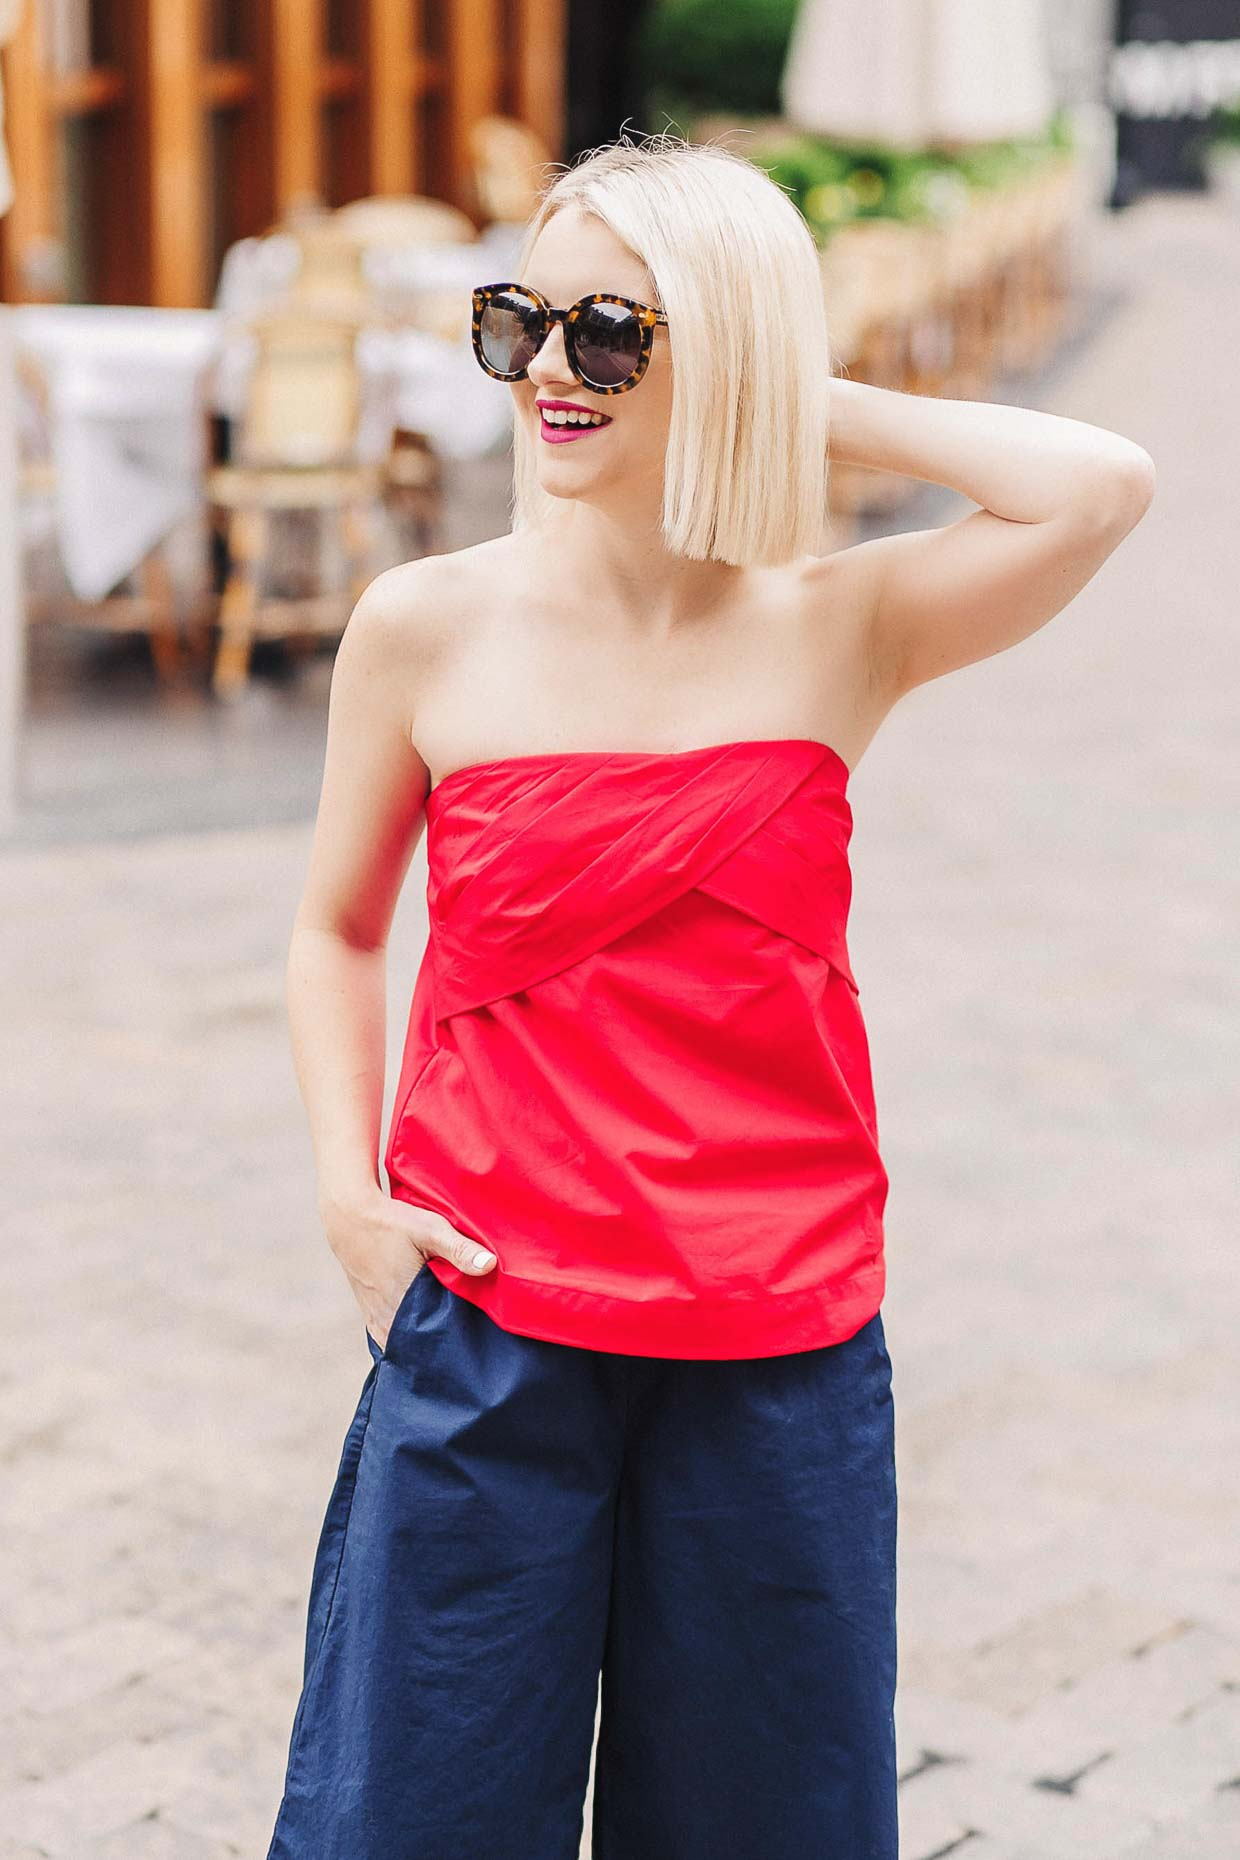 How To Style A Red Strapless Top For Summer - Poor Little It Girl